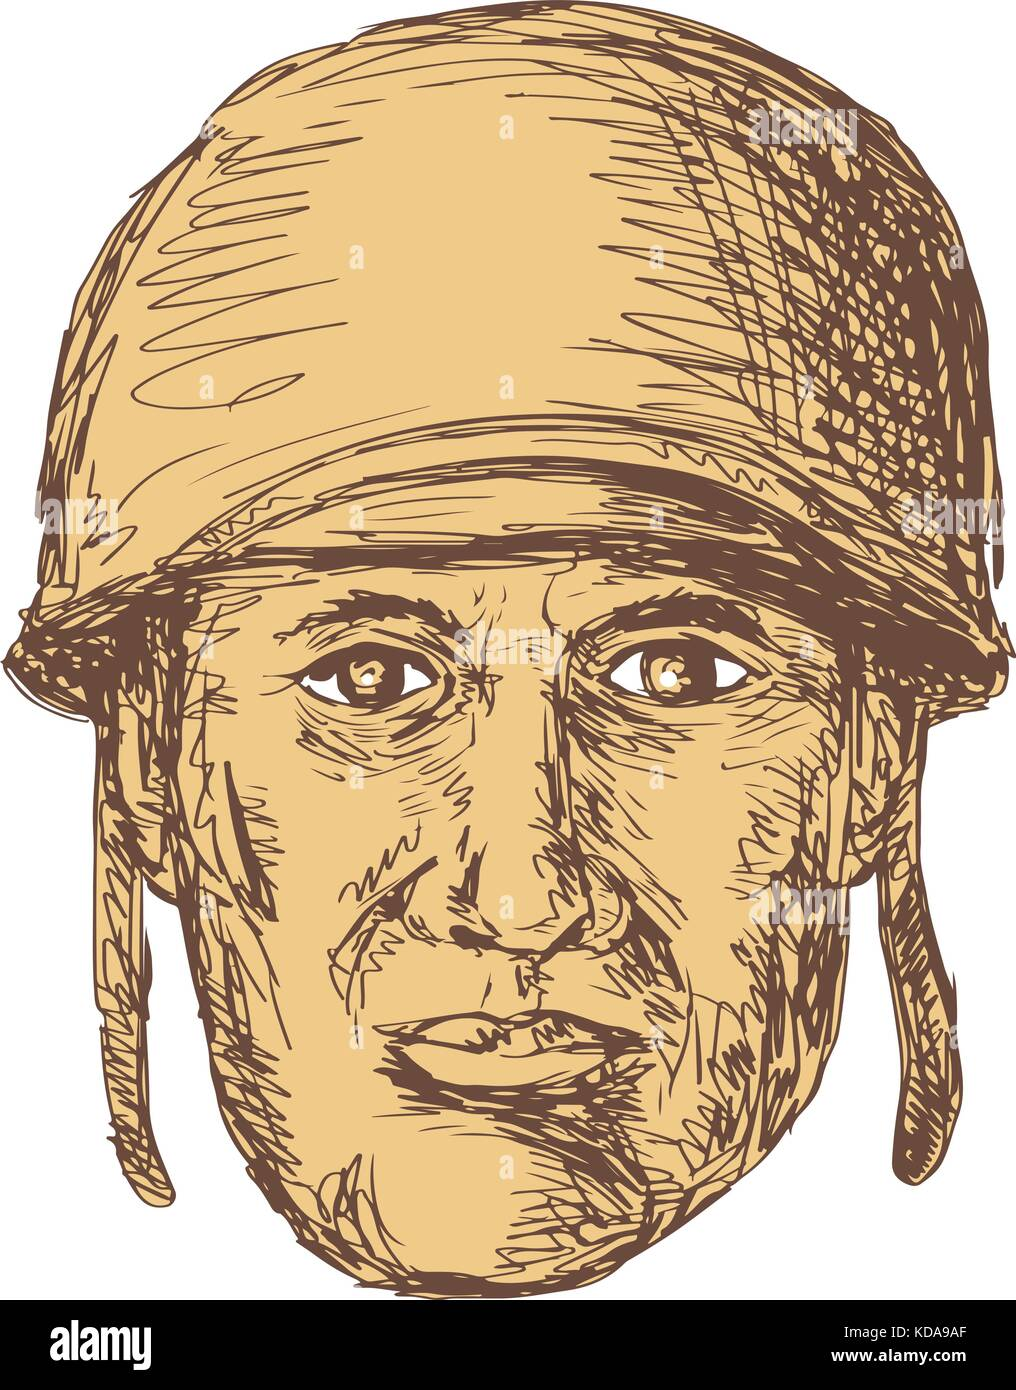 Drawing sketch style illustration of a WW2 or world war two American Soldier Head wearing a helmet viewed from front - Stock Vector